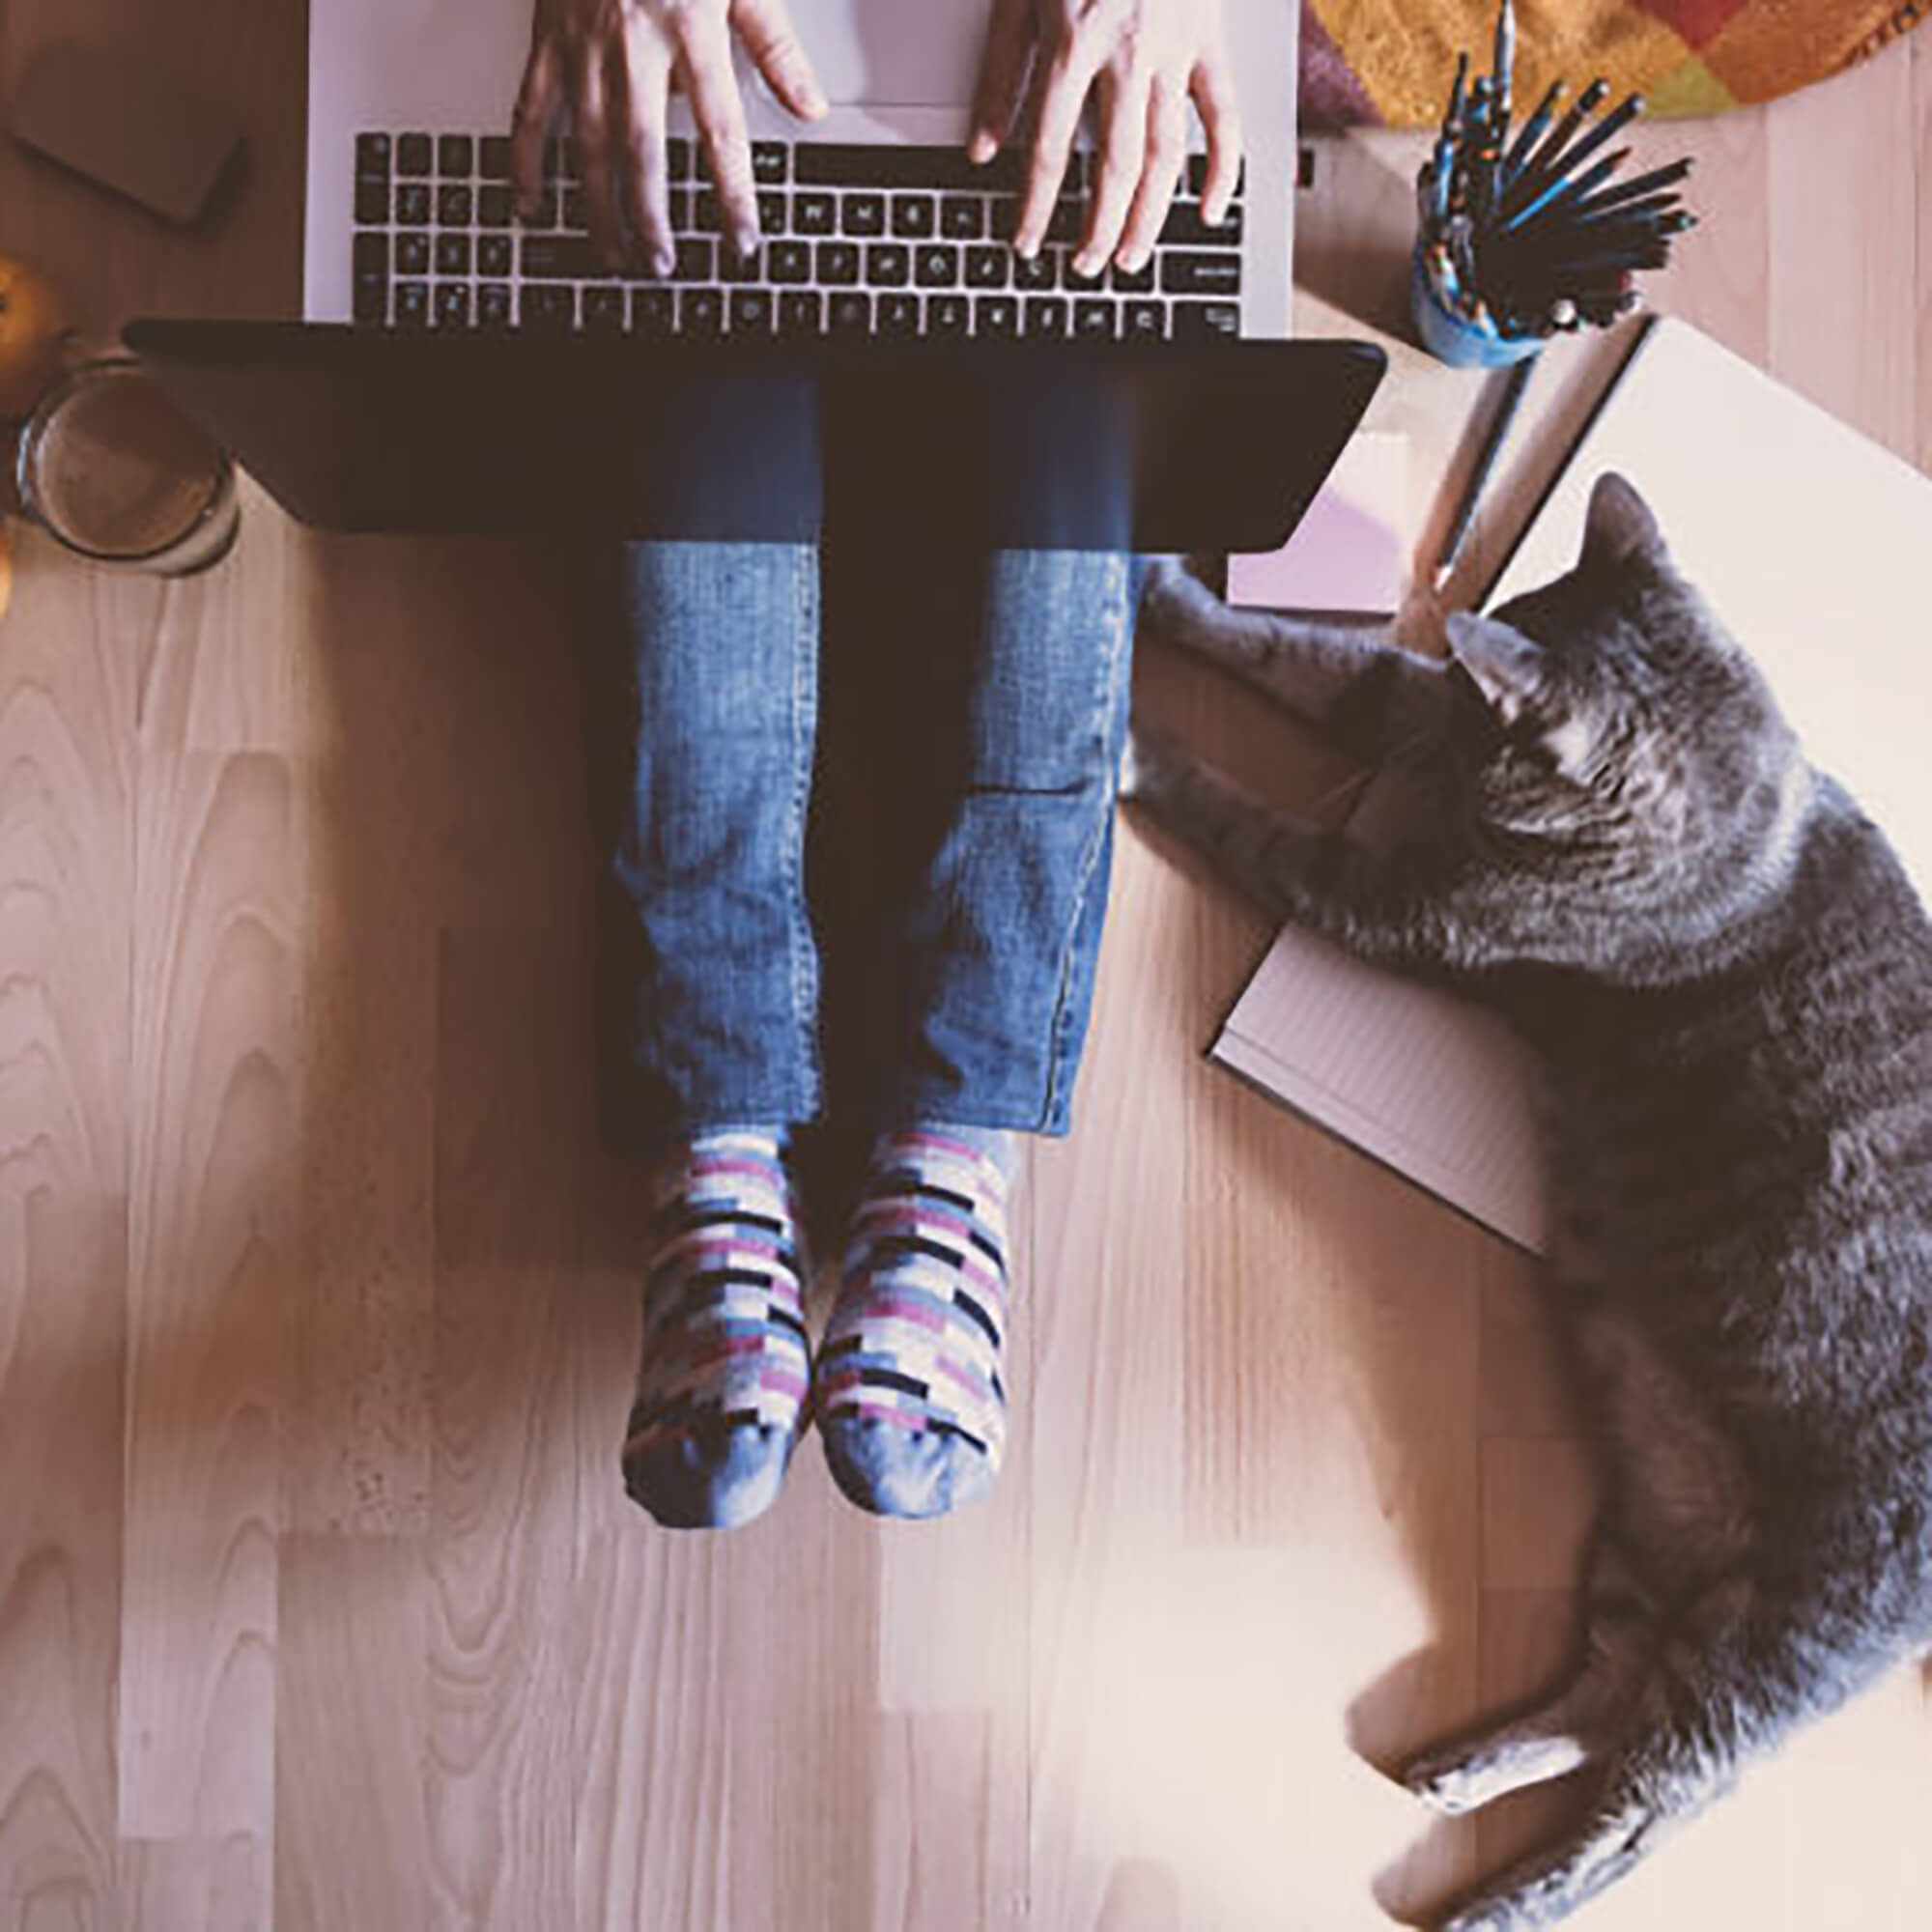 A student sitting on the floor typing into a laptop with a cat lying beside them